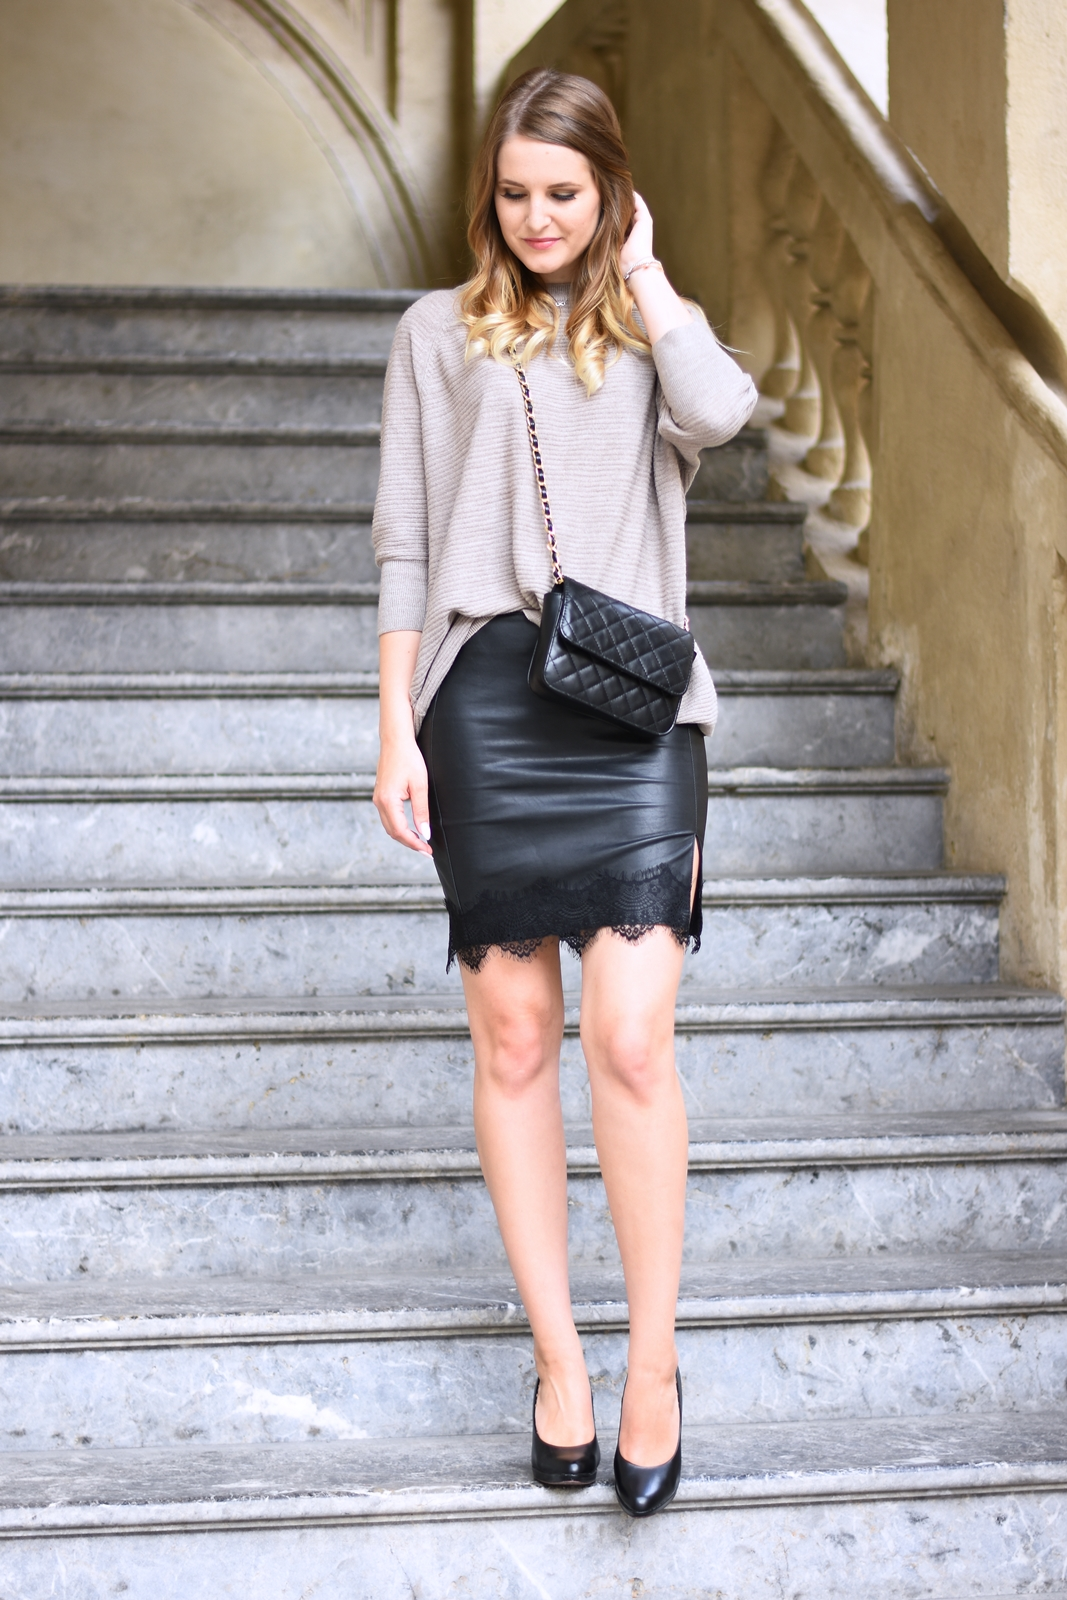 Faux Leather meets Cozy Sweater - Kunstlederrock mit Spitze und oversized Sweater - Pumps - Cross Body Bag - Kombination - Lederrock kombinieren - Herbst Trend - Streetstyle - Alltagslook - Outfit Look Fashion Style - Herbst Mode - Fall Trend - Fashionladyloves by Tamara Wagner - Fashion Blog aus Graz Österreich - Mode Blogger